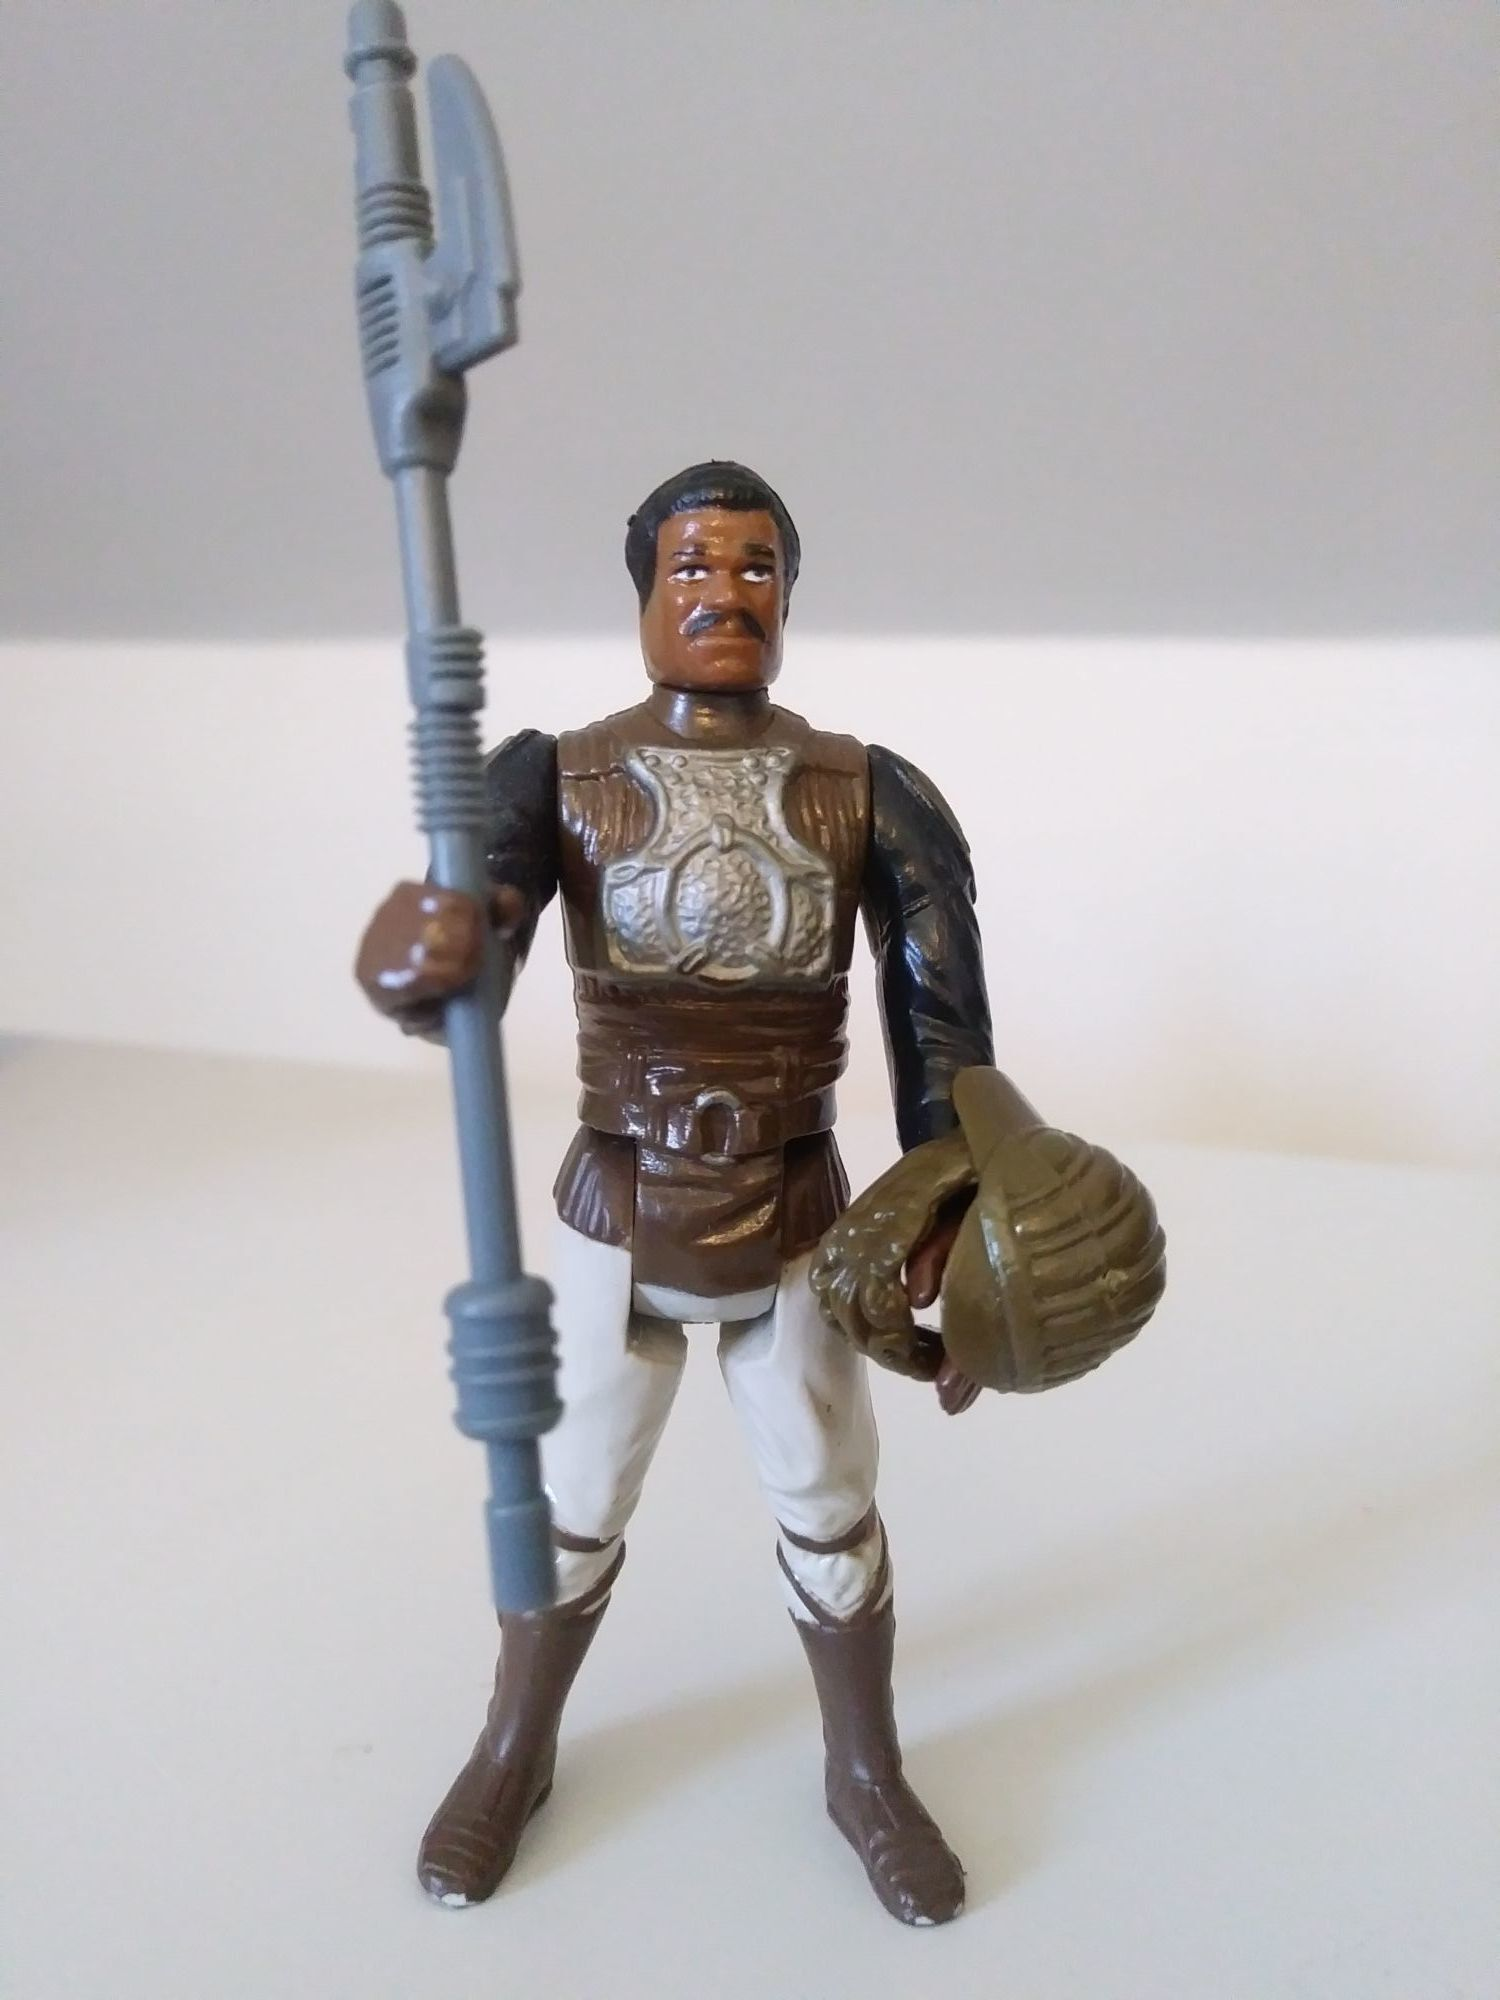 The best vintage Kenner Star Wars action figures from a nostalgic POV